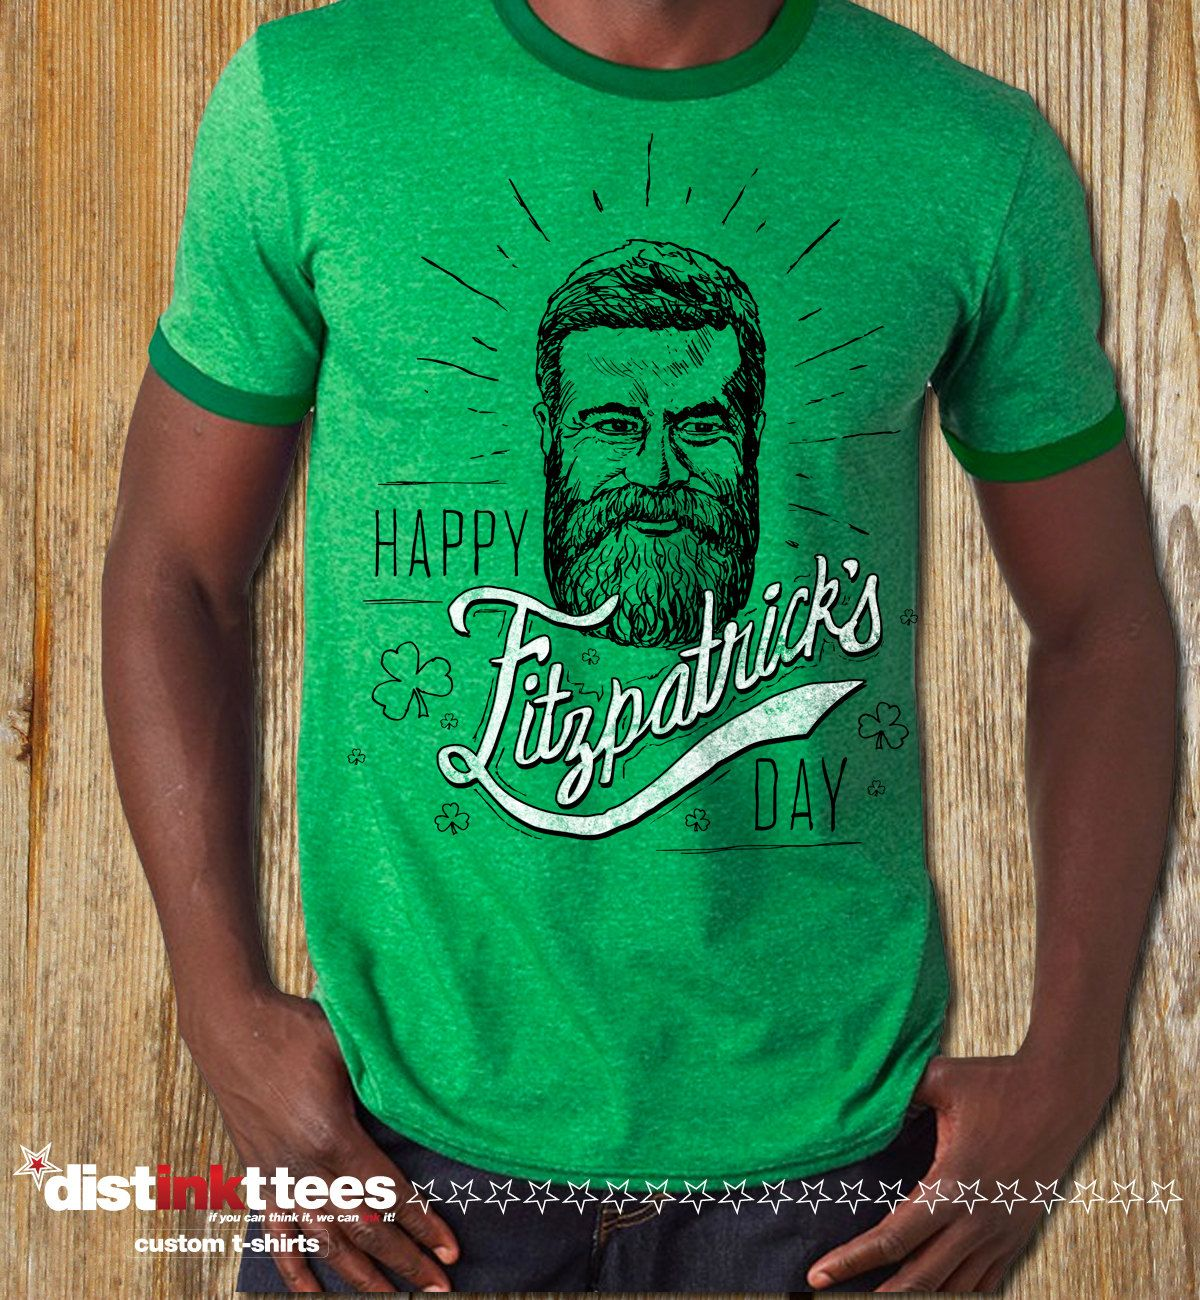 FITZPATRICKS DAY t shirt. St. Patricks Day shirt. New York jets. Ryan  Fitzpatrick by DISTINKTTEES on Etsy ba00e52bd